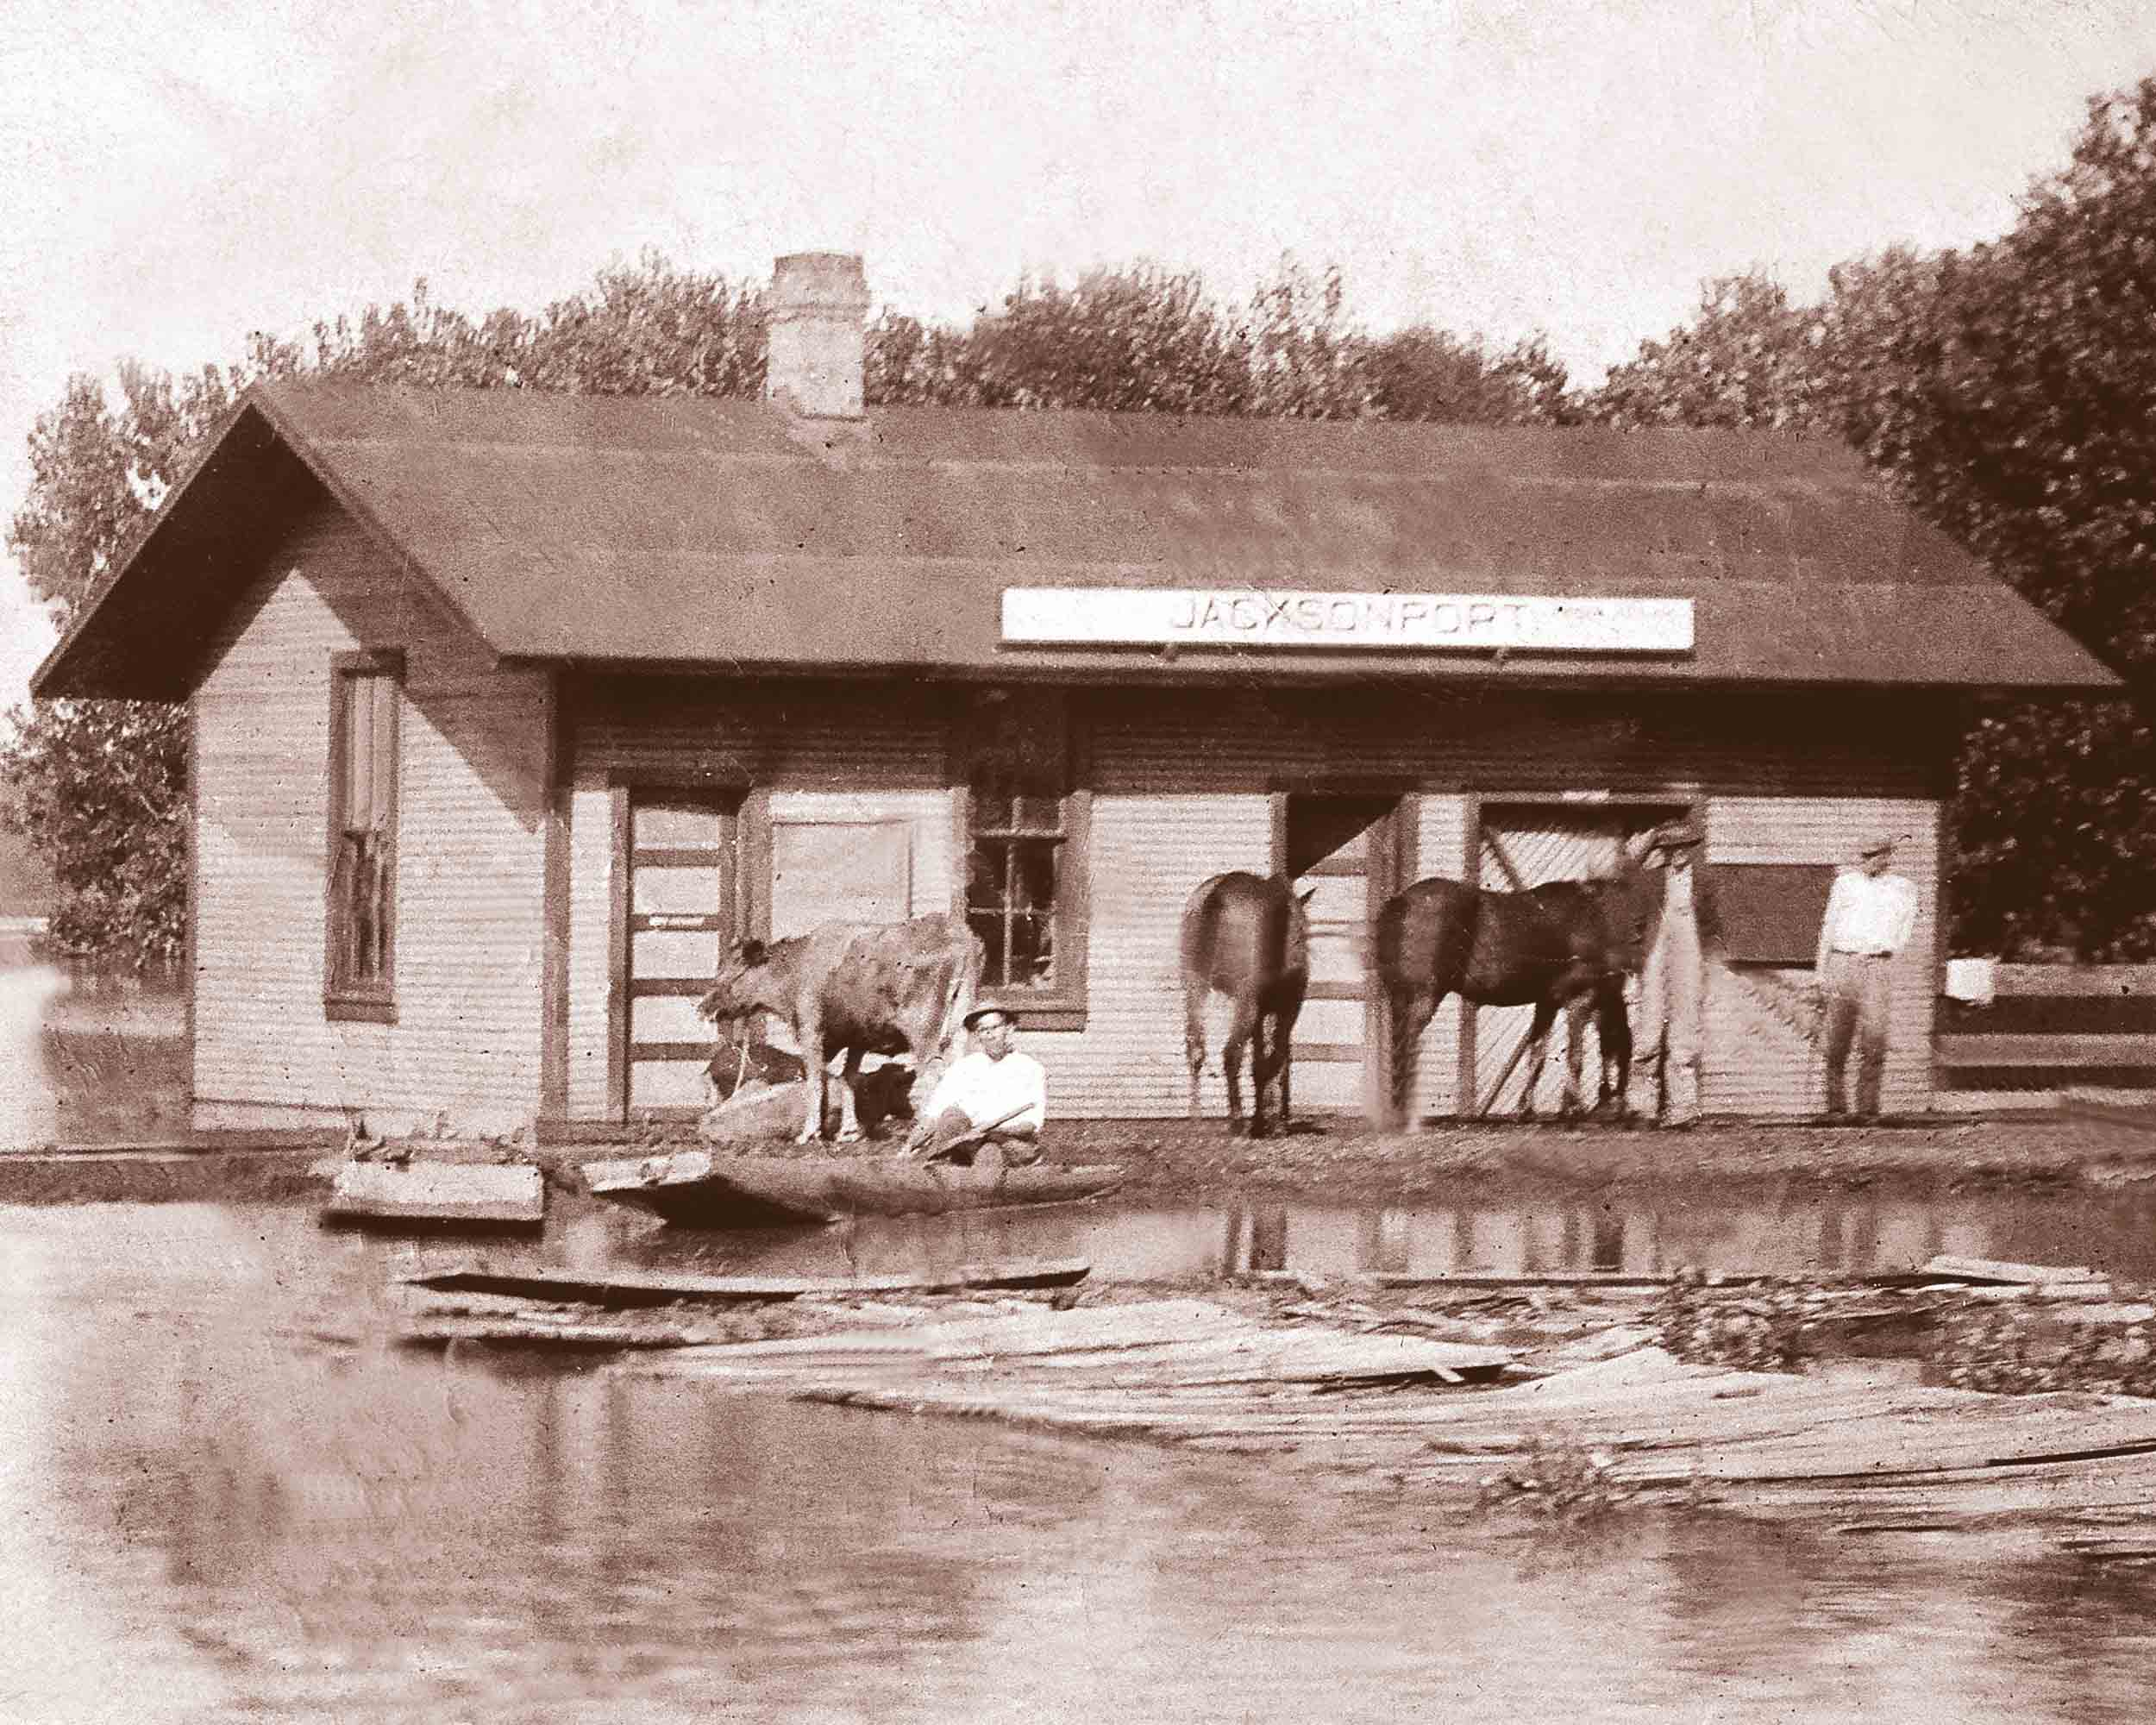 1927 – Flood at the Jacksonport Depot